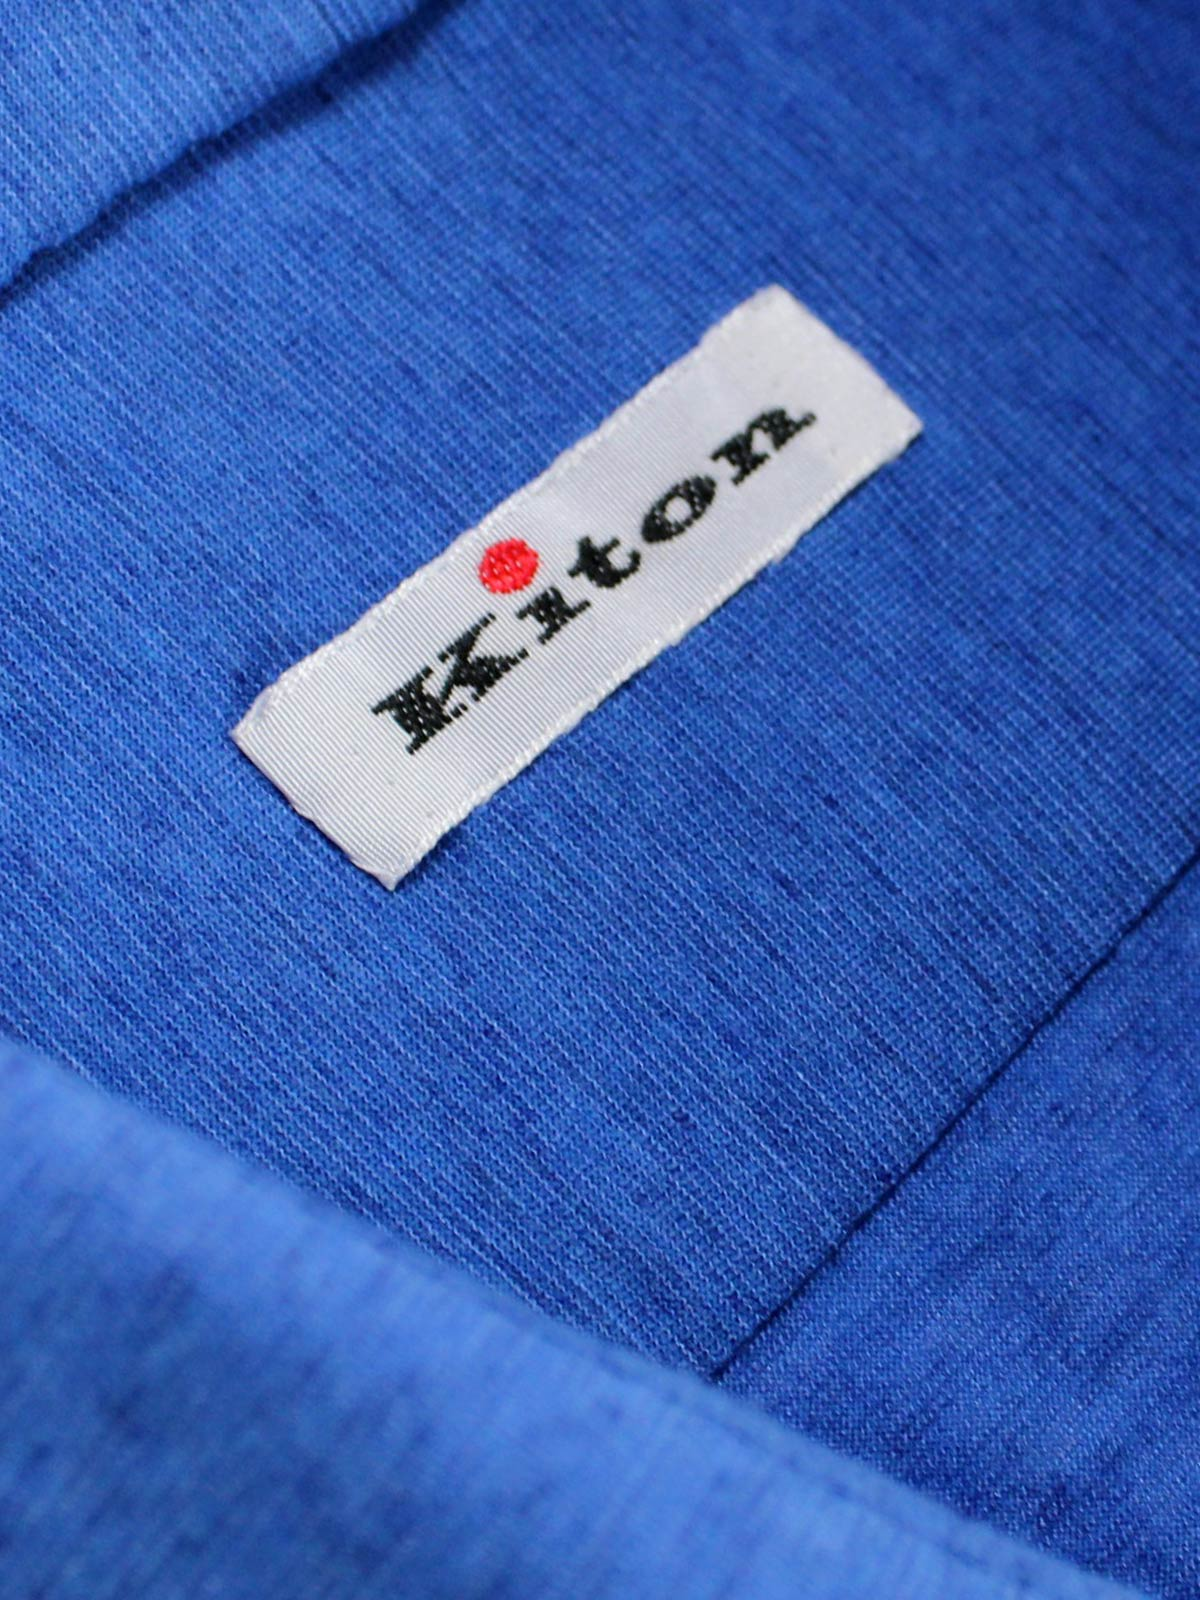 Kiton Shirt Royal Blue Sartorial Dress Shirt 42 - 16 1/2 SALE